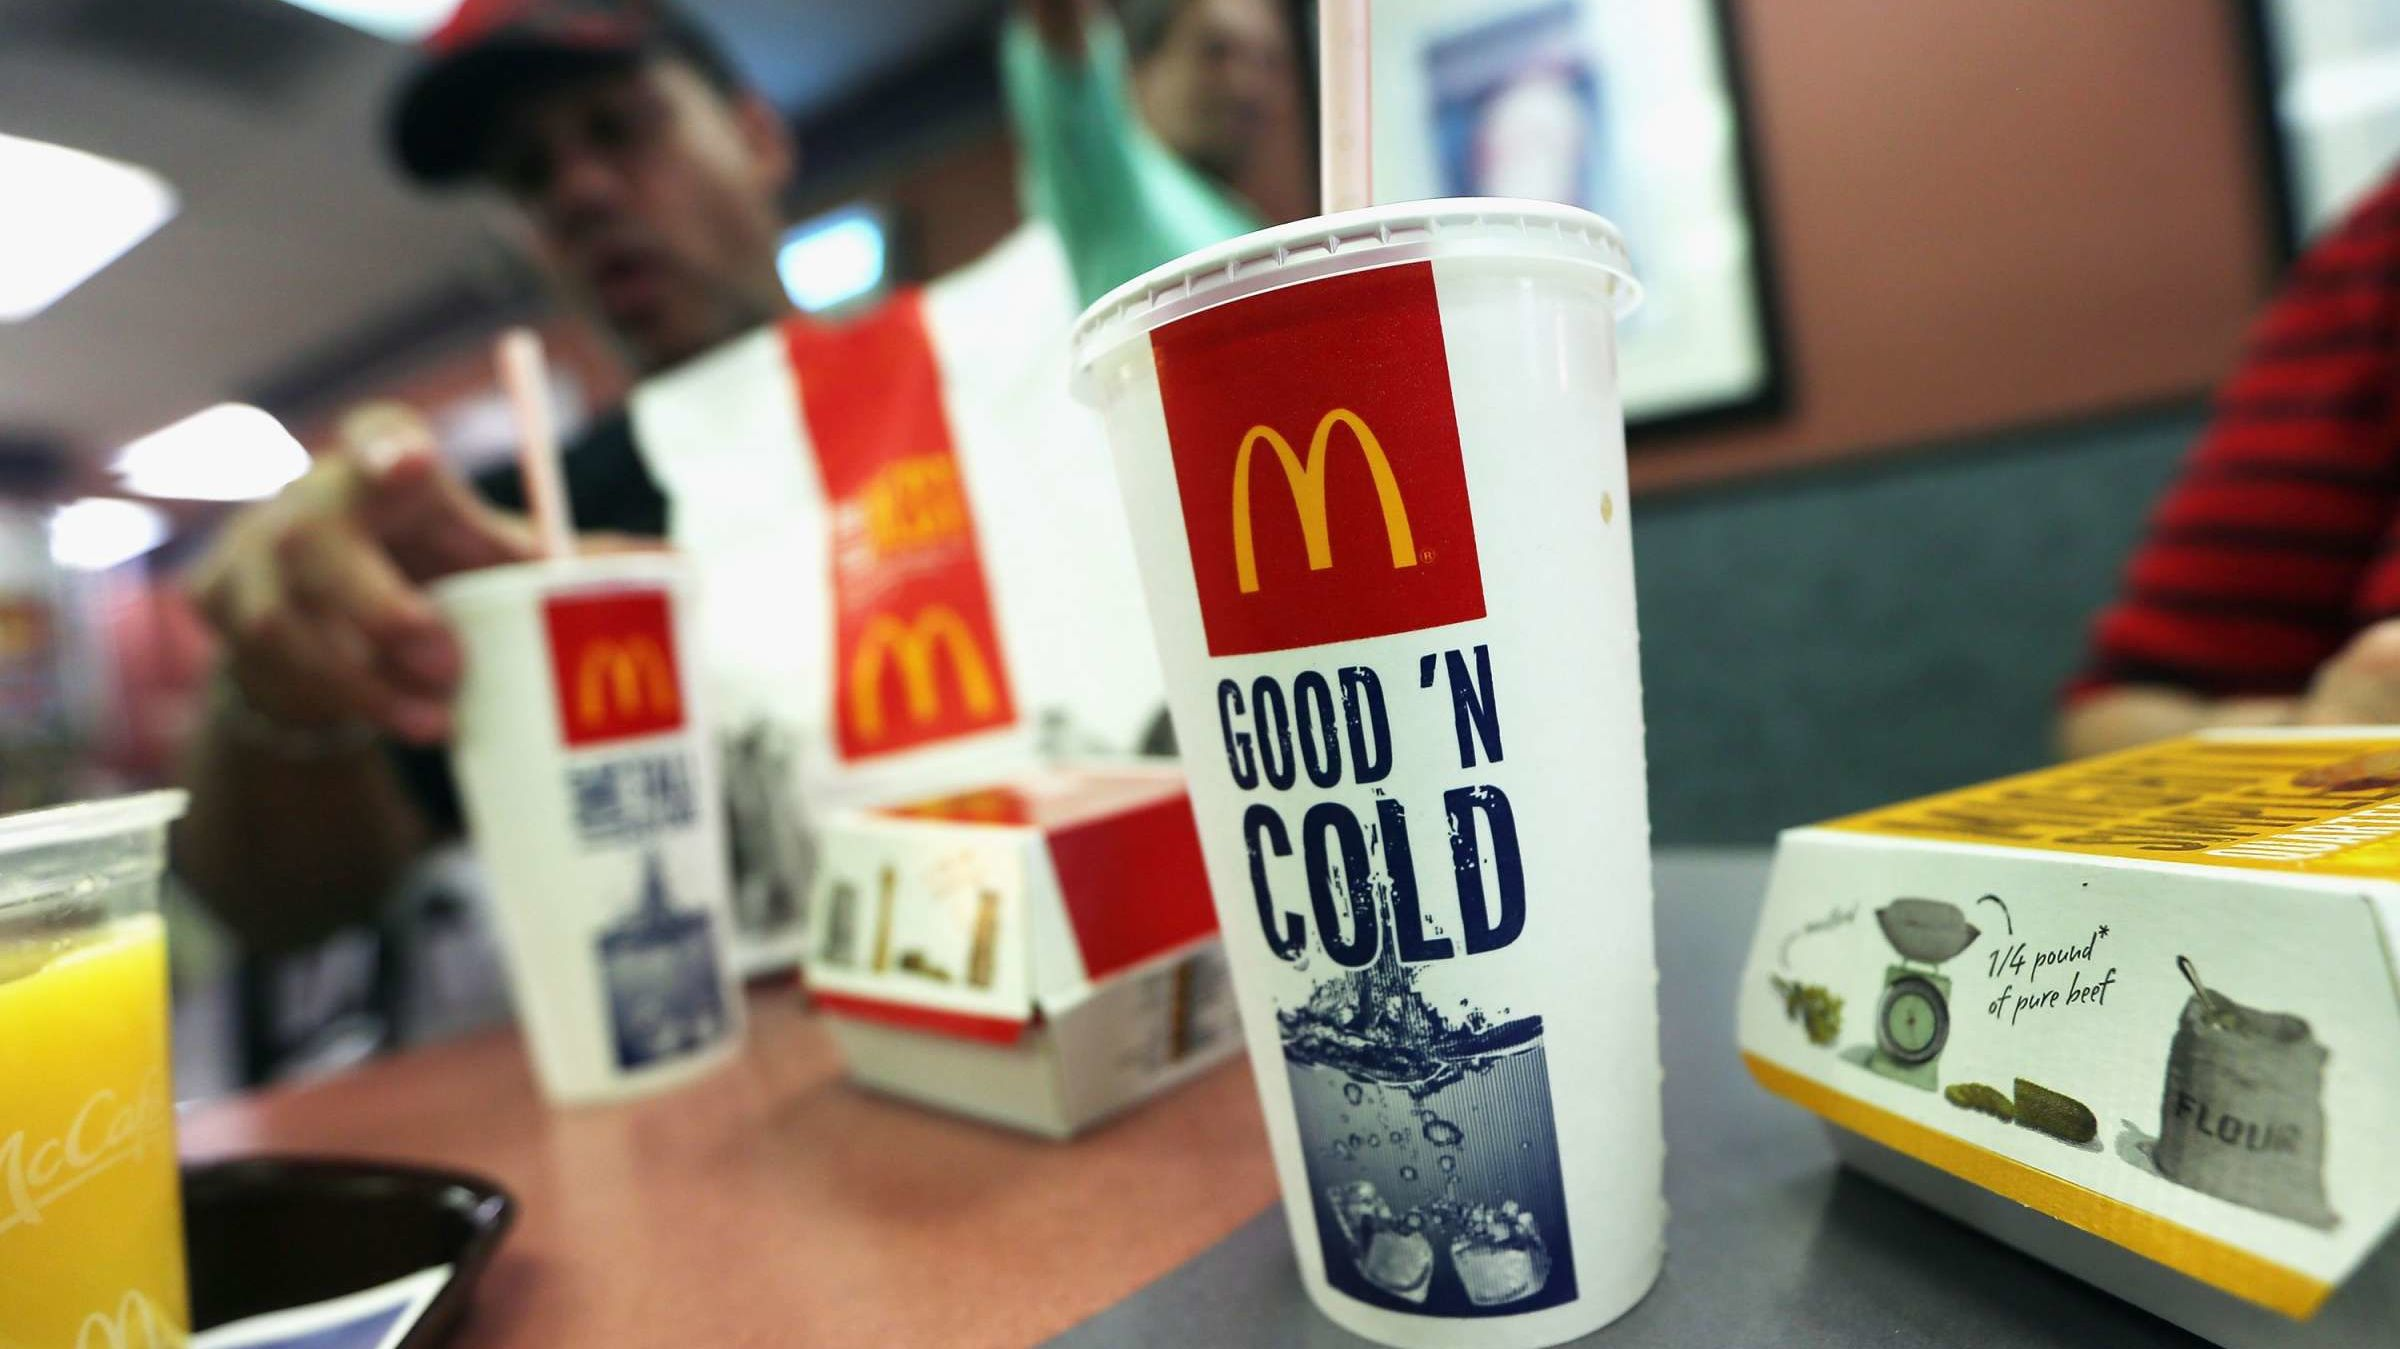 Here's Why the Coke at McDonald's Is So Good